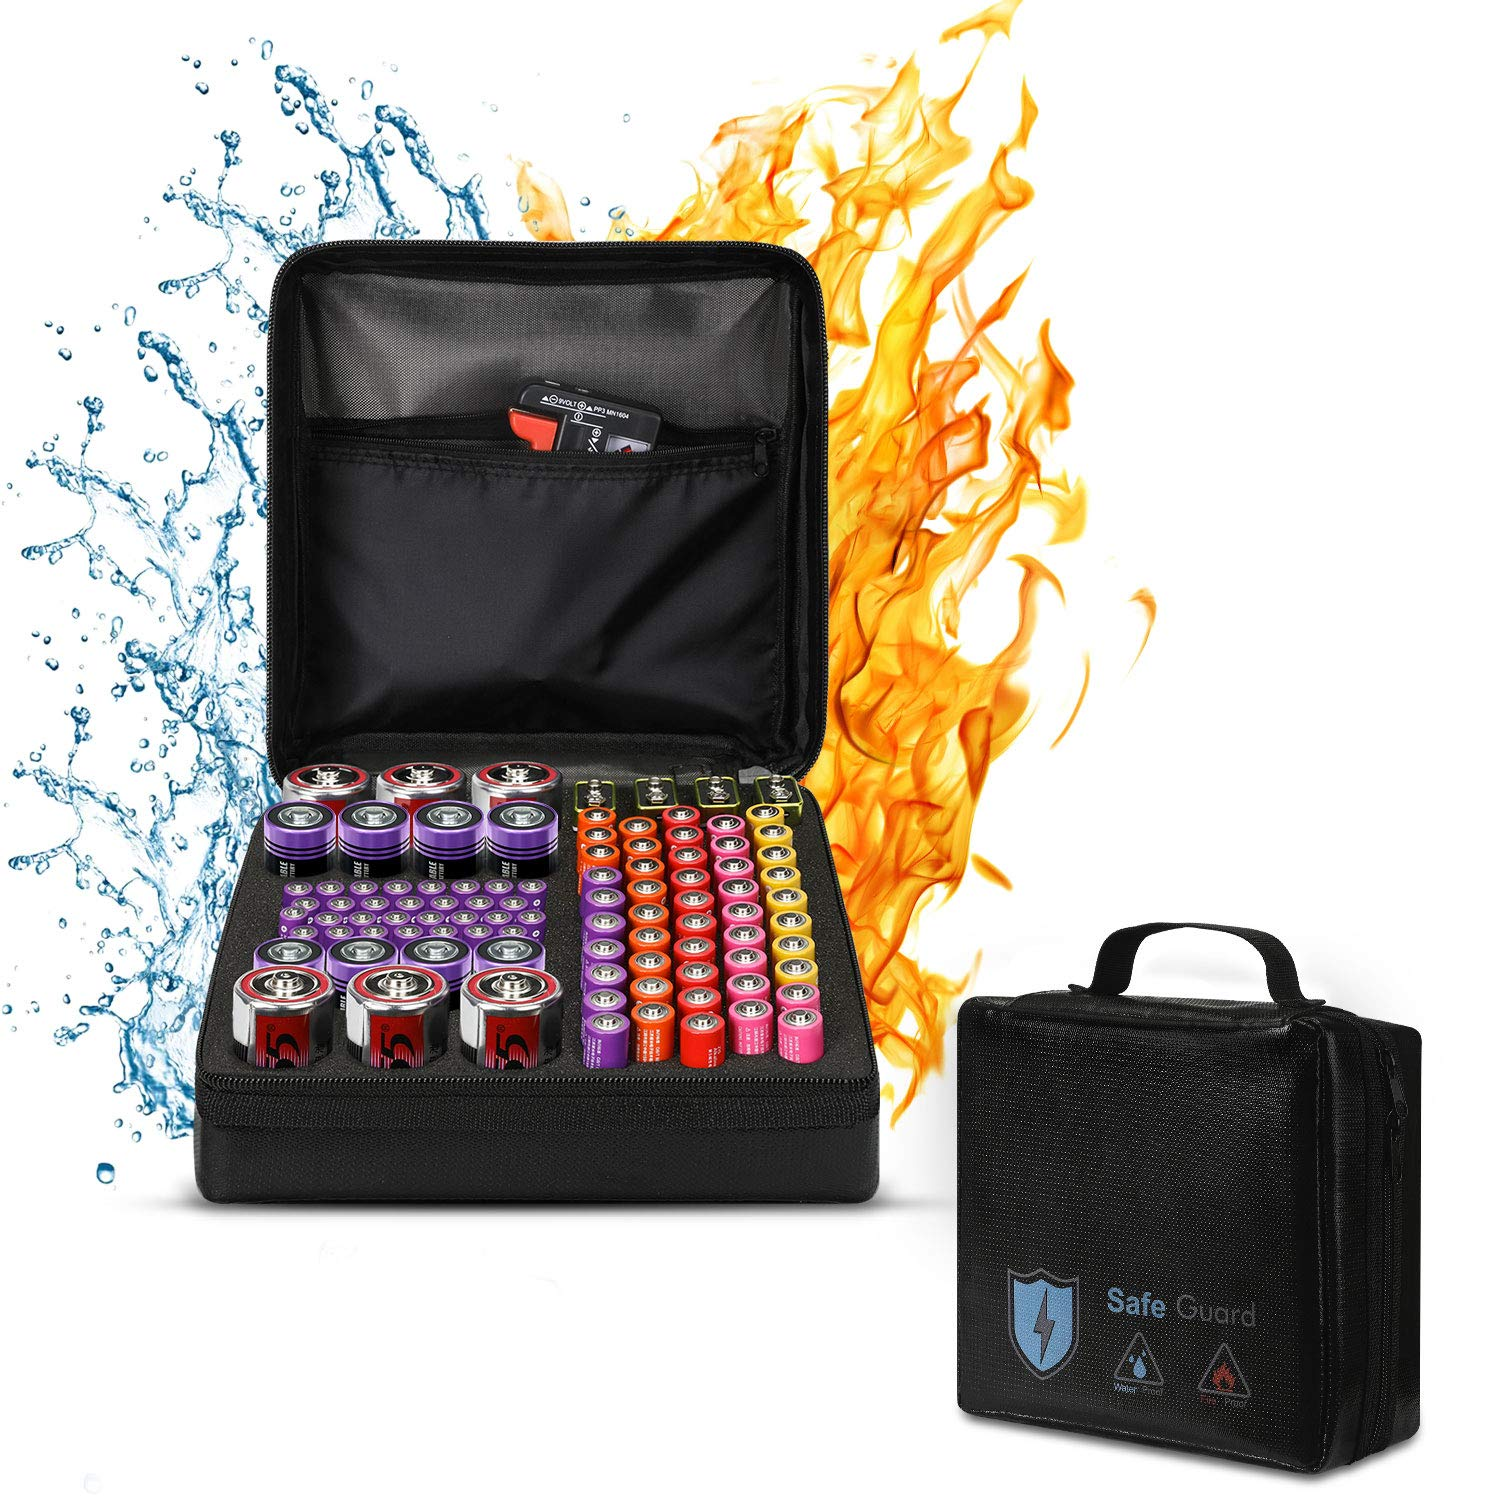 Battery Organizer Storage Fireproof Batteries Carrying case Holder Waterproof Bag Holds C D 9V AA AAA Lithium 3V(Batteries and Battery Tester are Not Included)